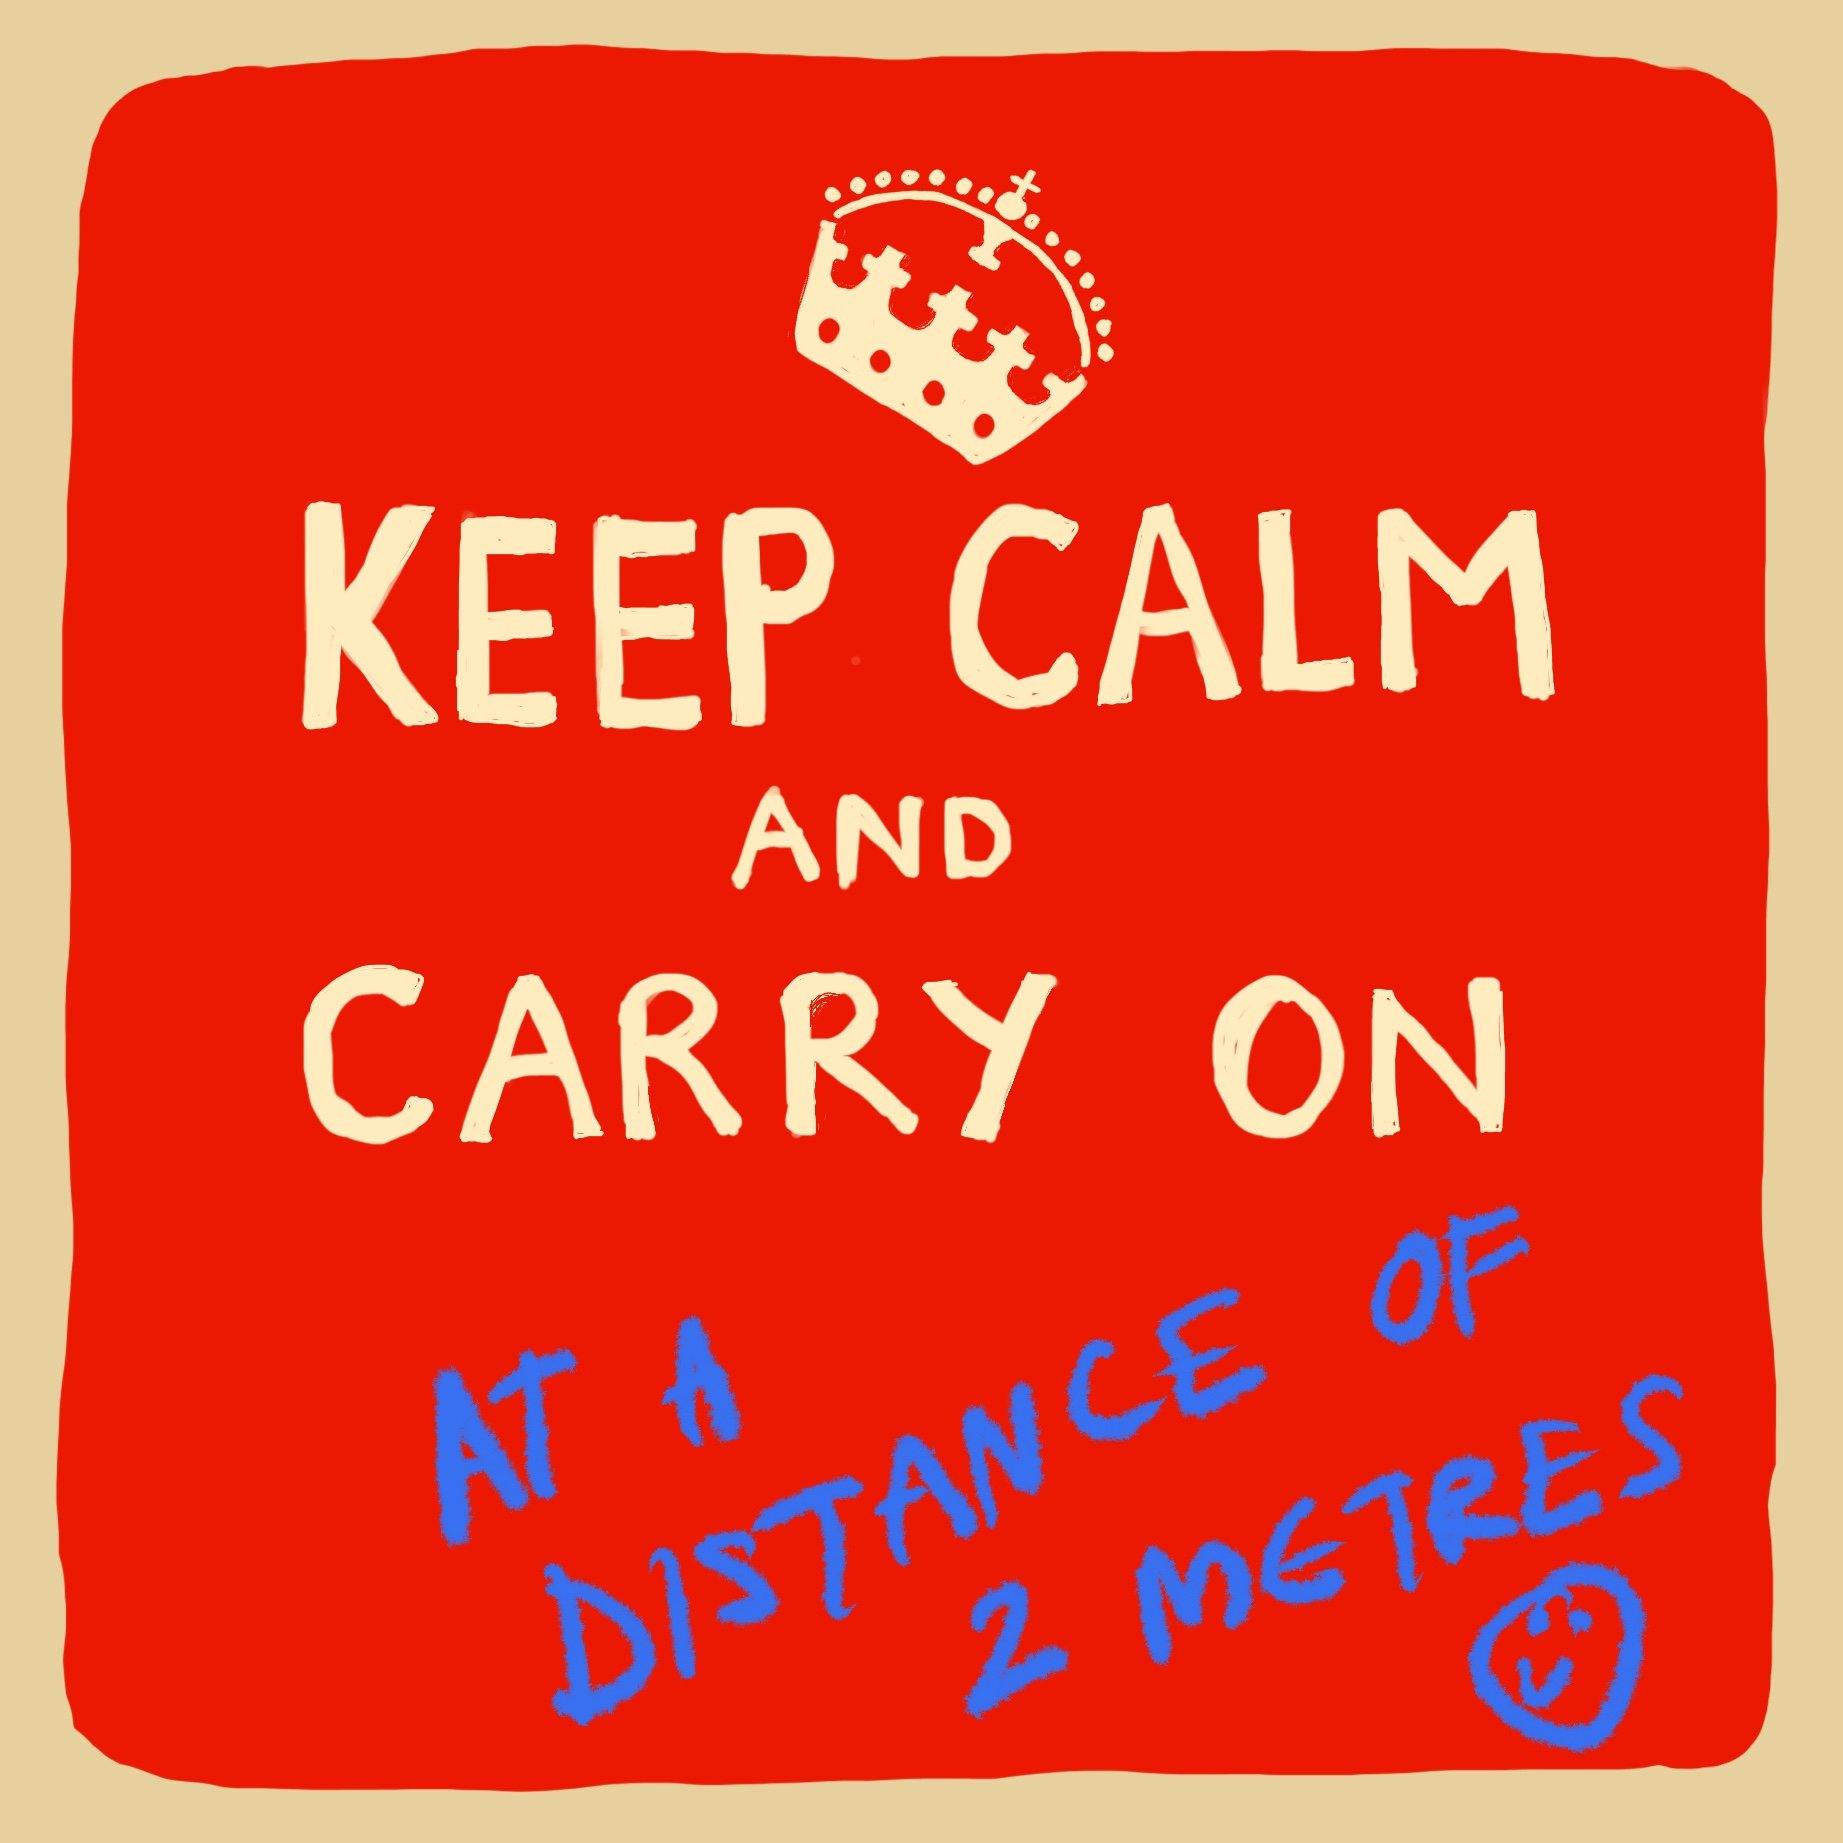 Keep Calm At A Distance Card, Arts & Entertainment by Insideout